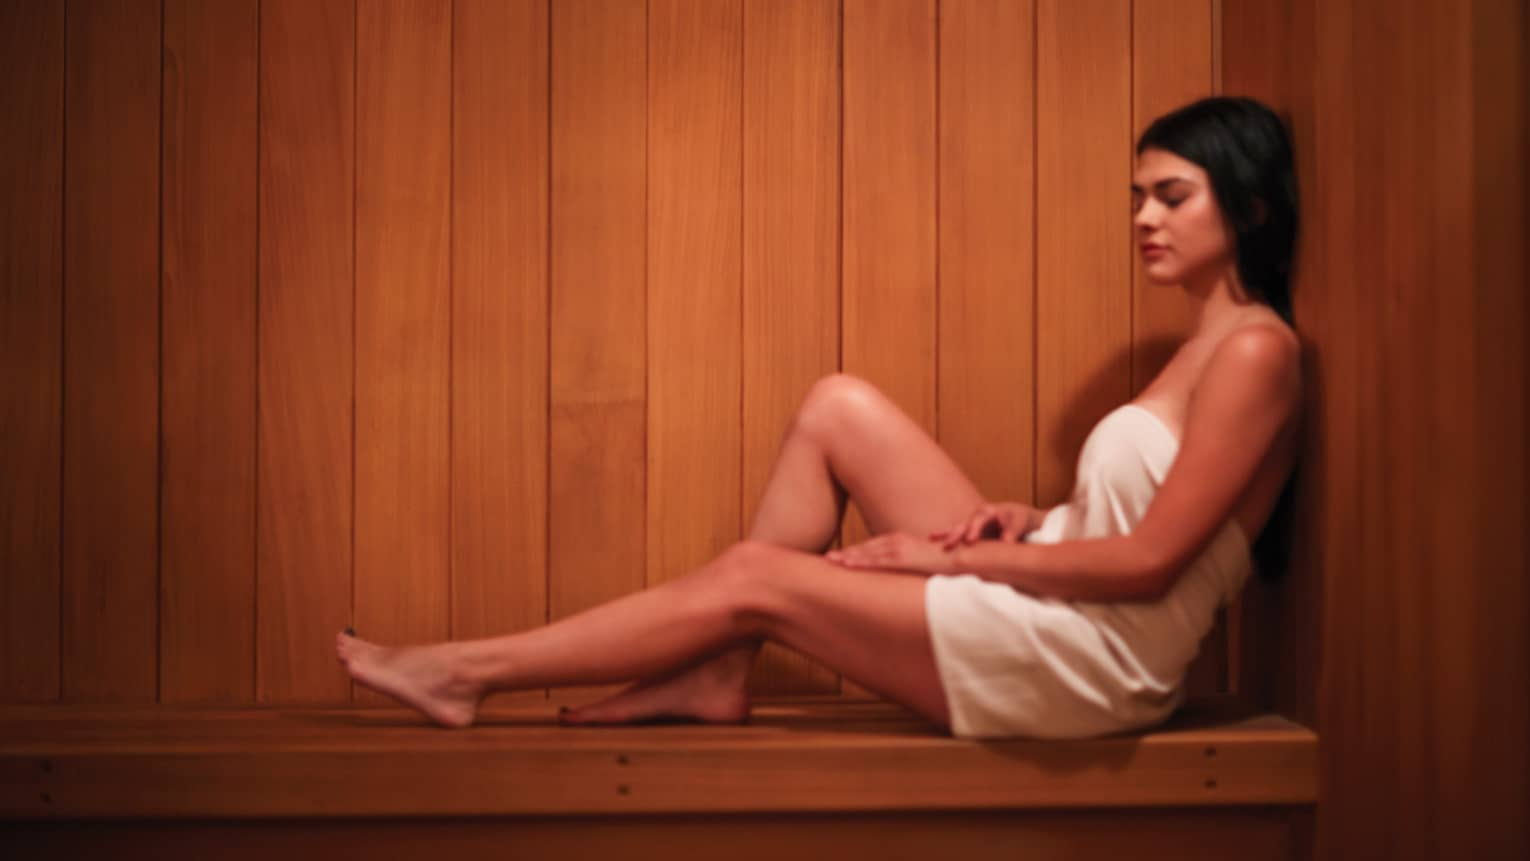 Woman in white towel with eyes closed rests back against wood wall, bench in sauna